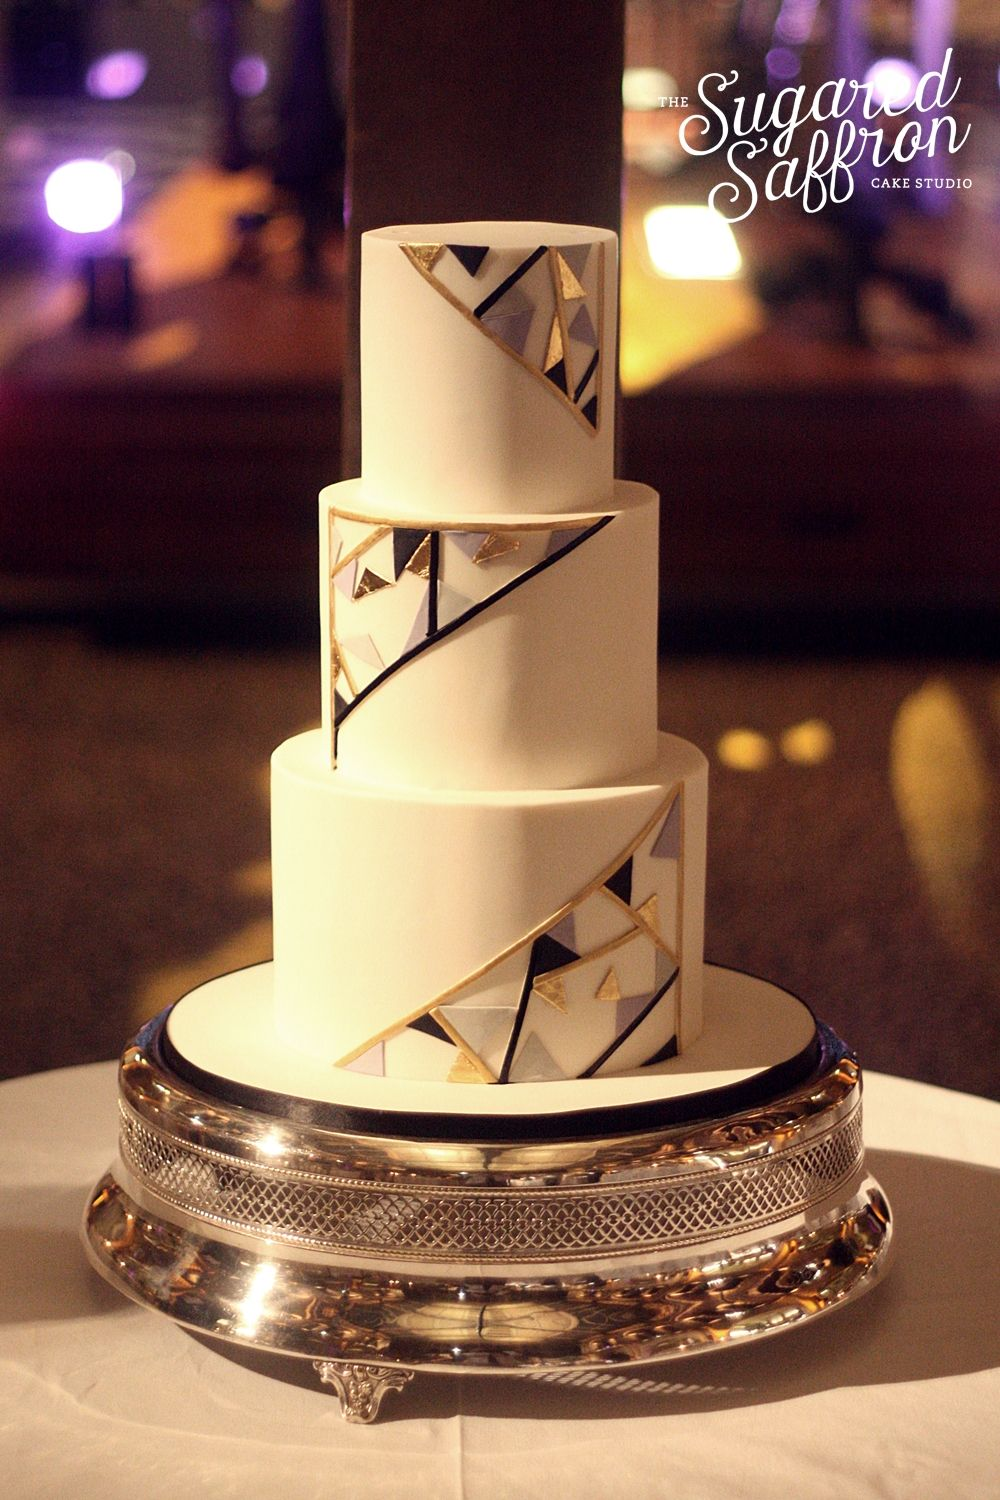 Art deco geometric wedding cake at the natural history museum ...